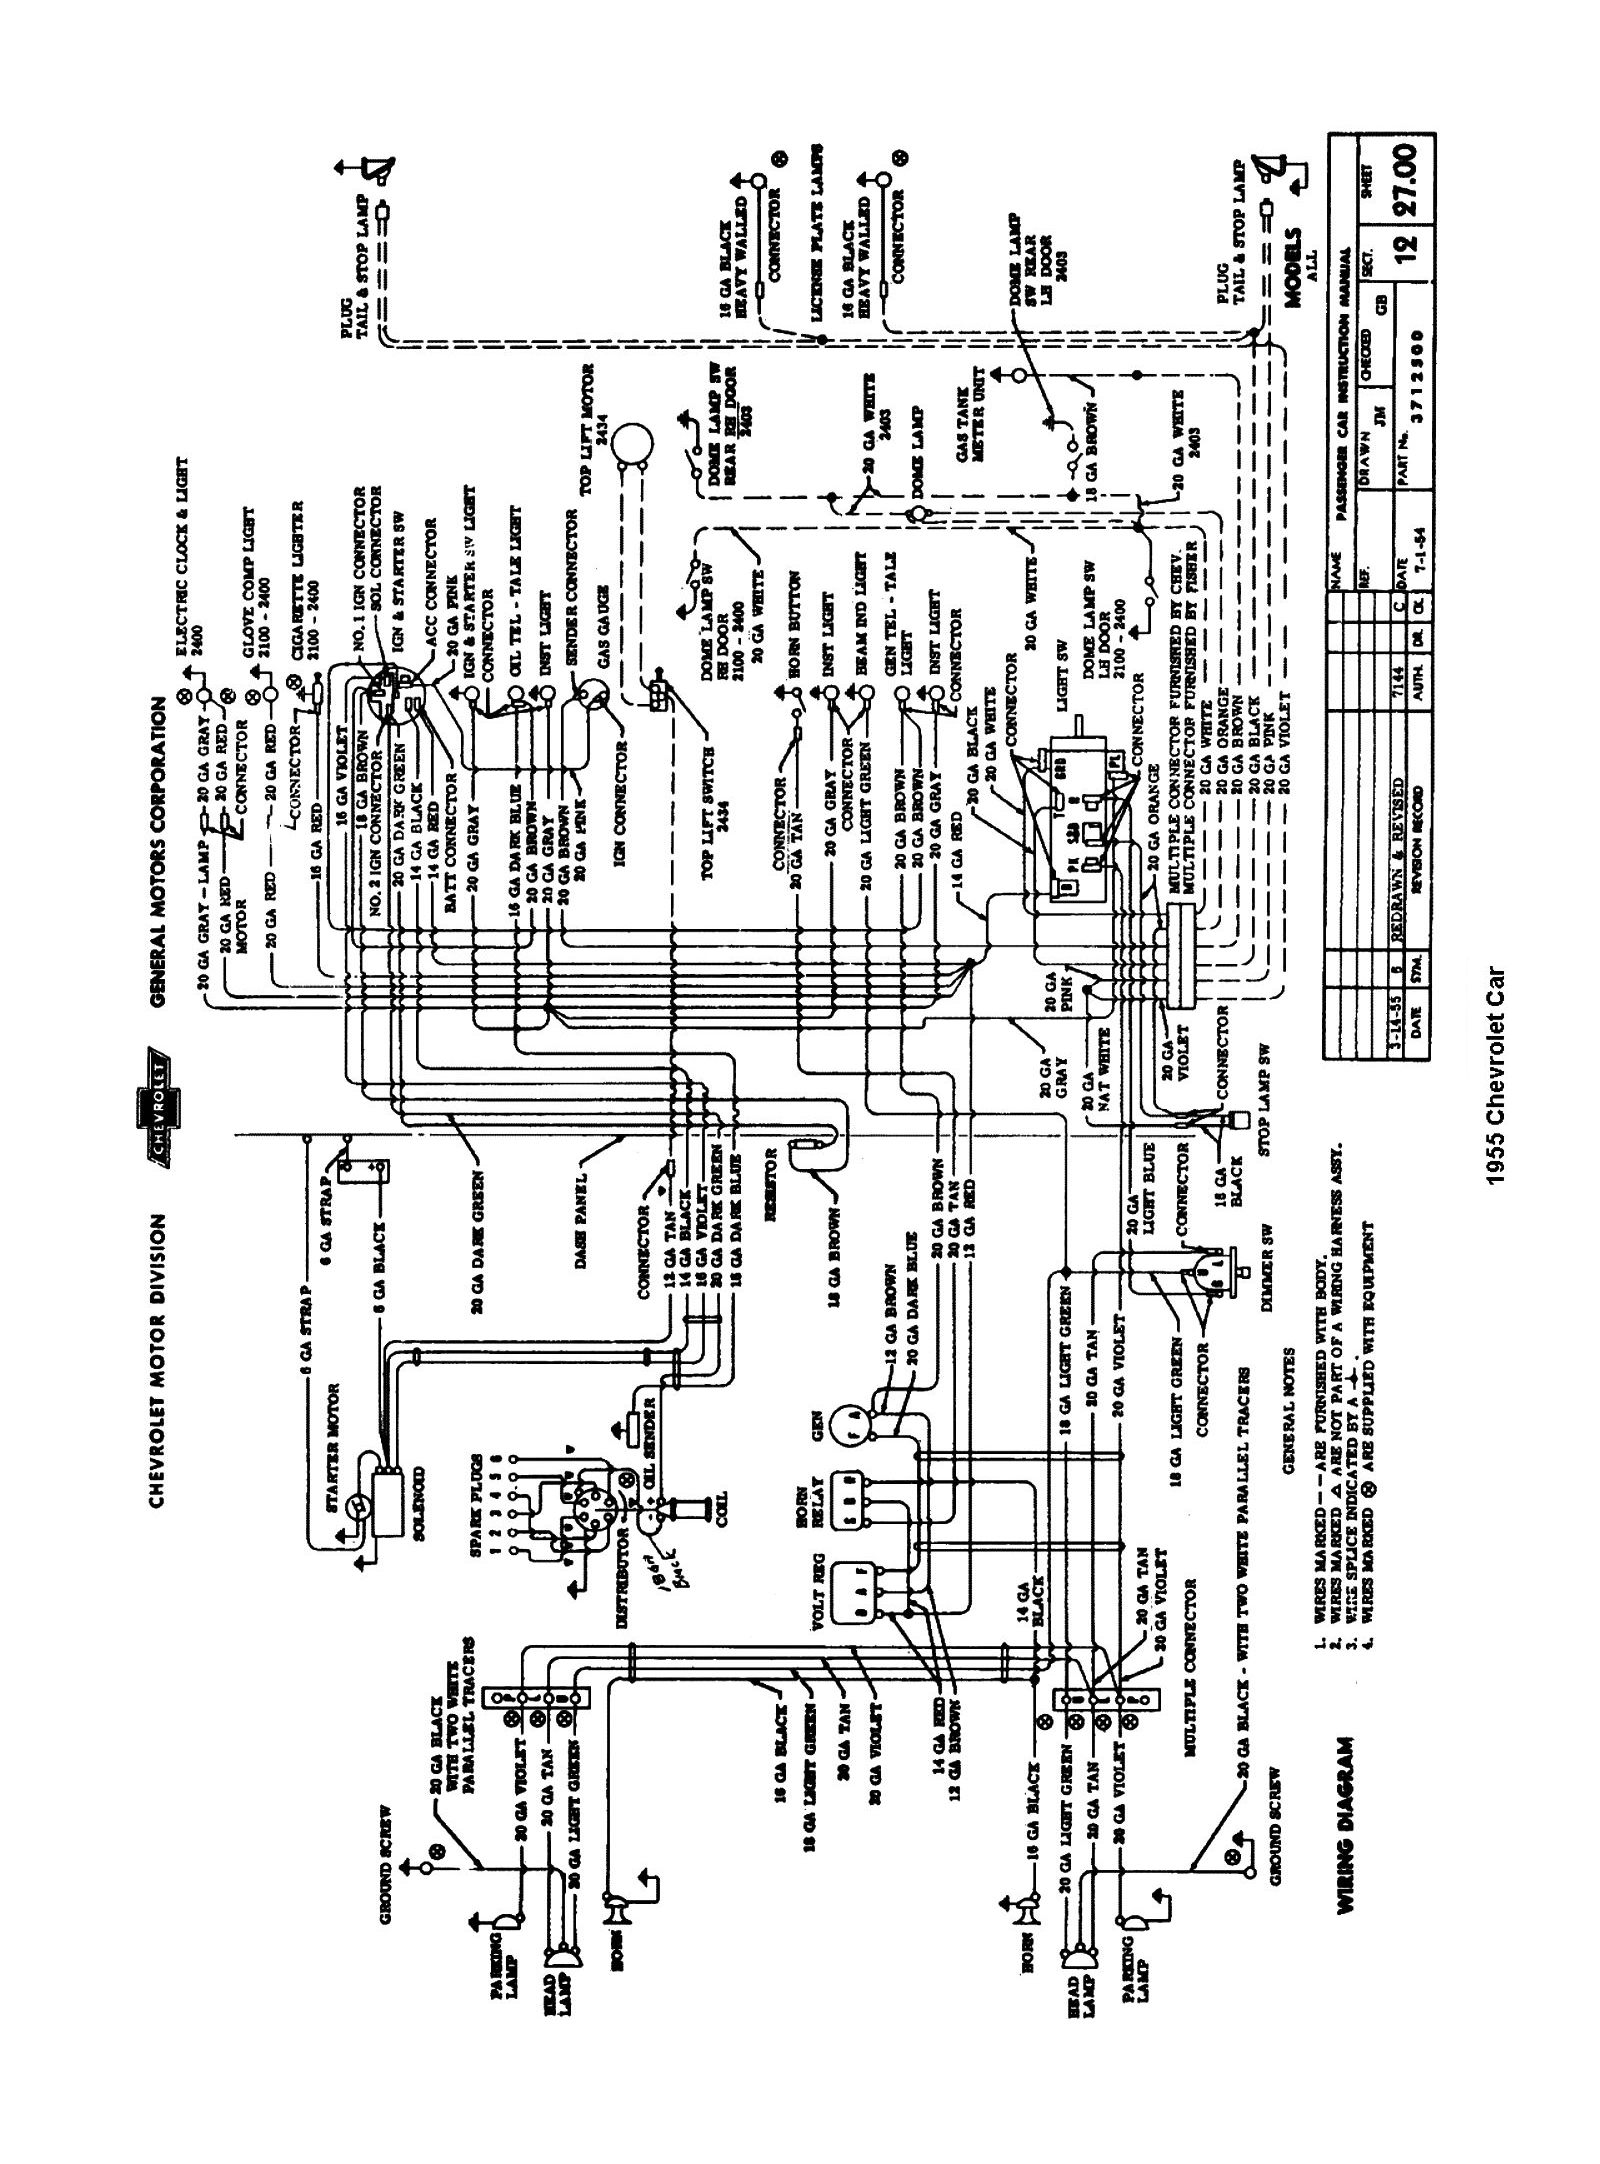 55car1 chevy wiring diagrams GM Factory Wiring Diagram at nearapp.co